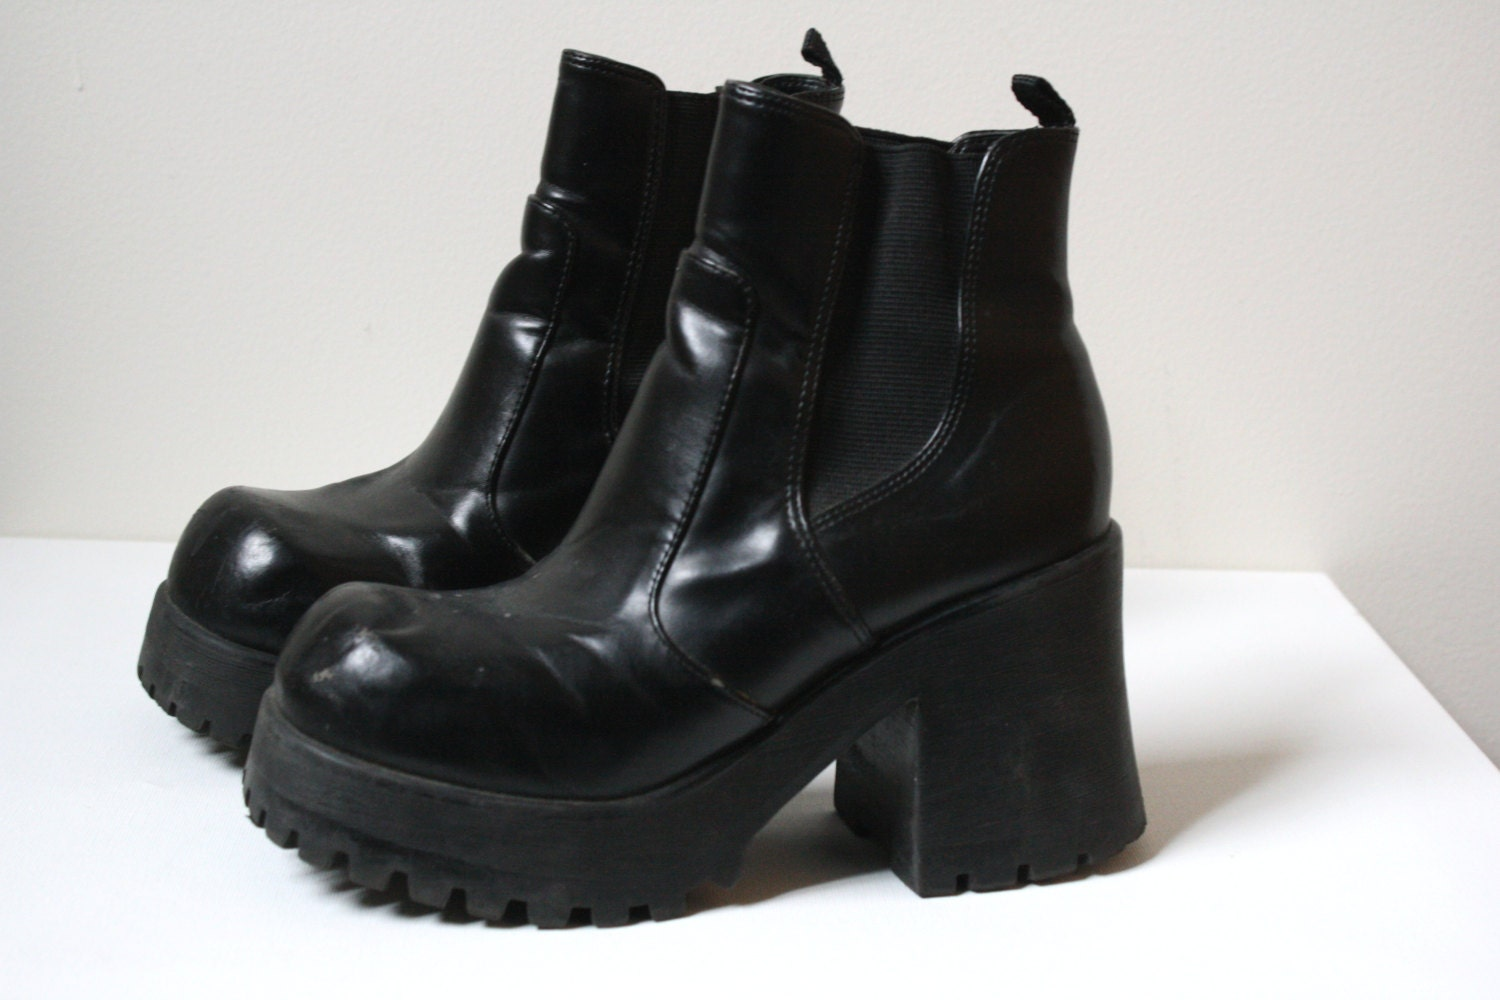 black vegan leather platform boots with elastic by